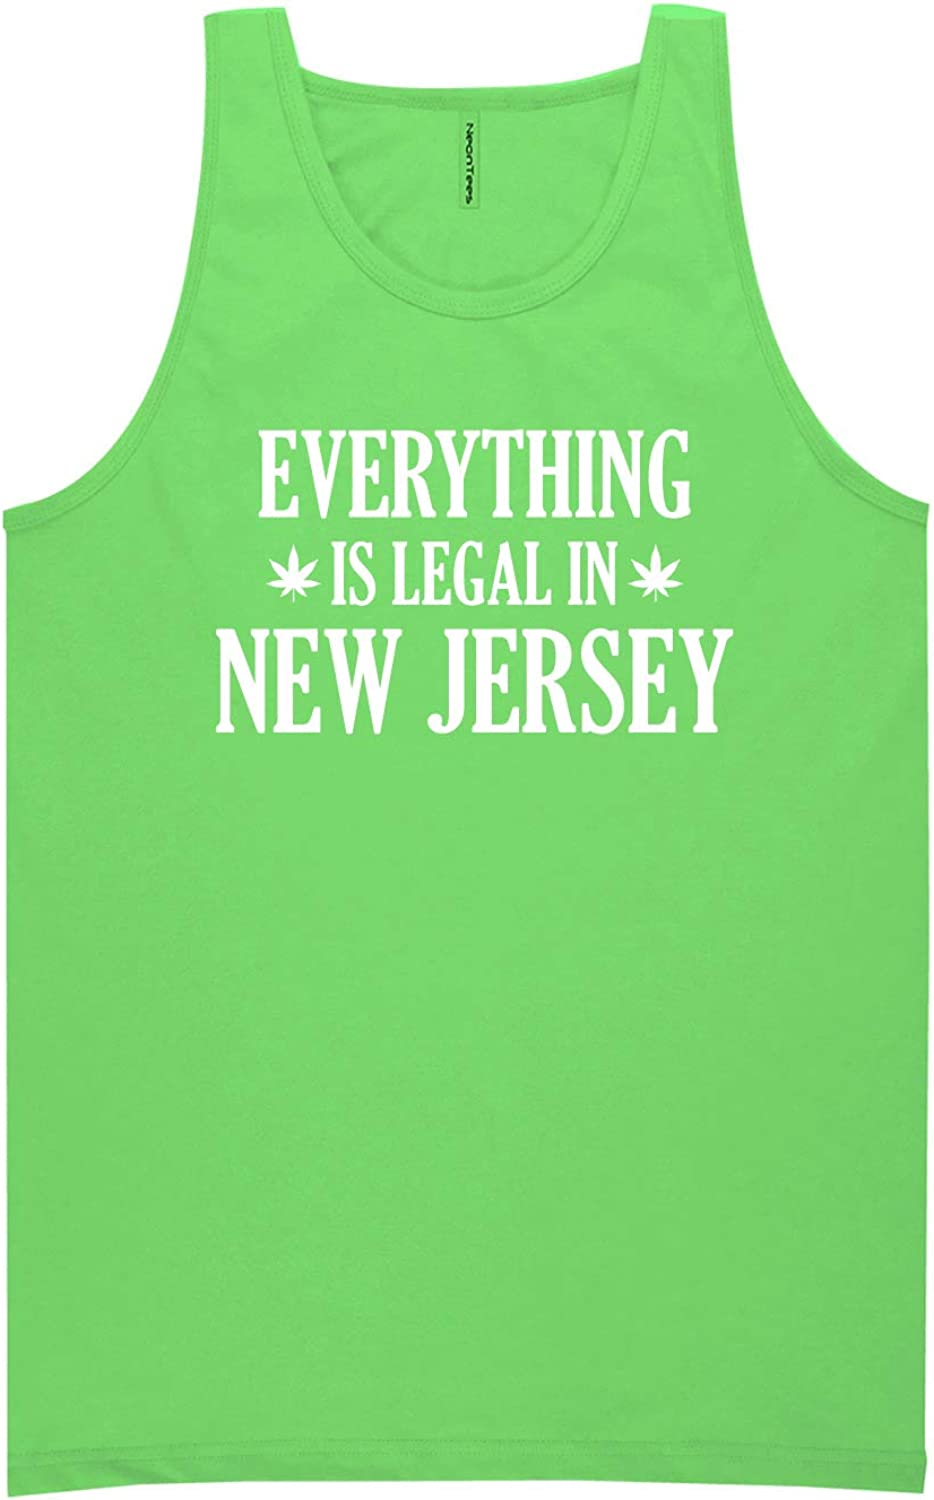 Everything is Legal in New Jersey Neon Green Tank Top - XX-Large